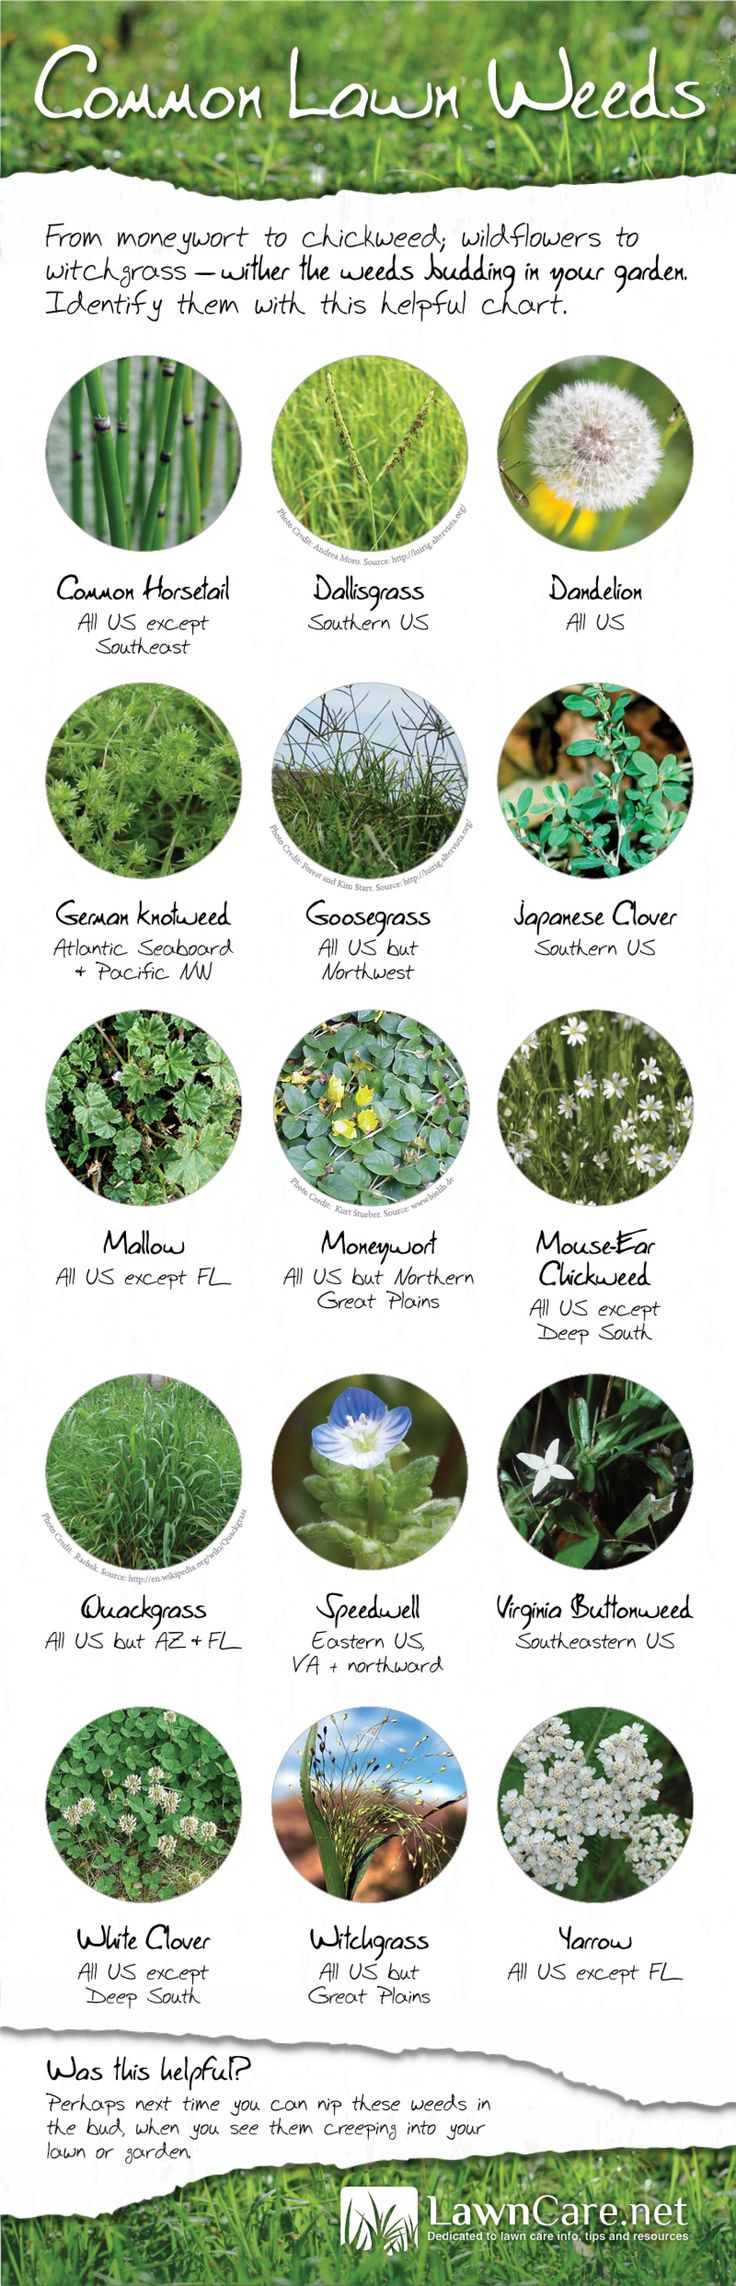 Weeds in flower beds identify - Find This Pin And More On Weed Identification